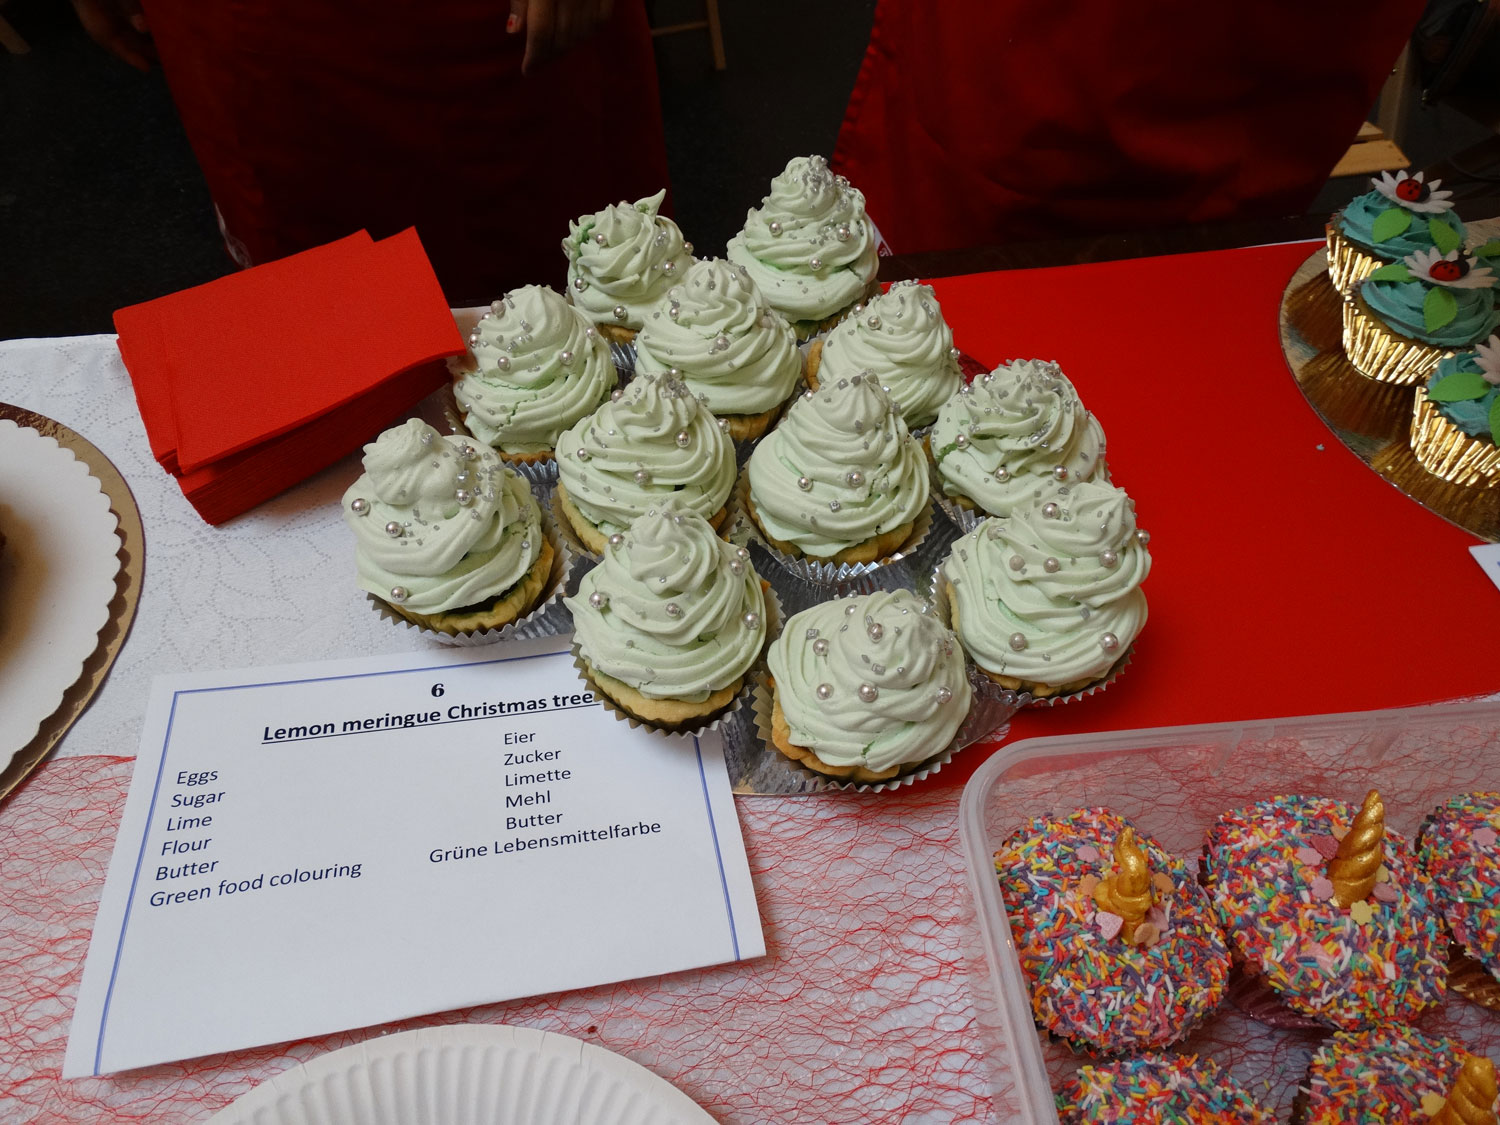 IWI-Bake-Off-Nov-2016_11